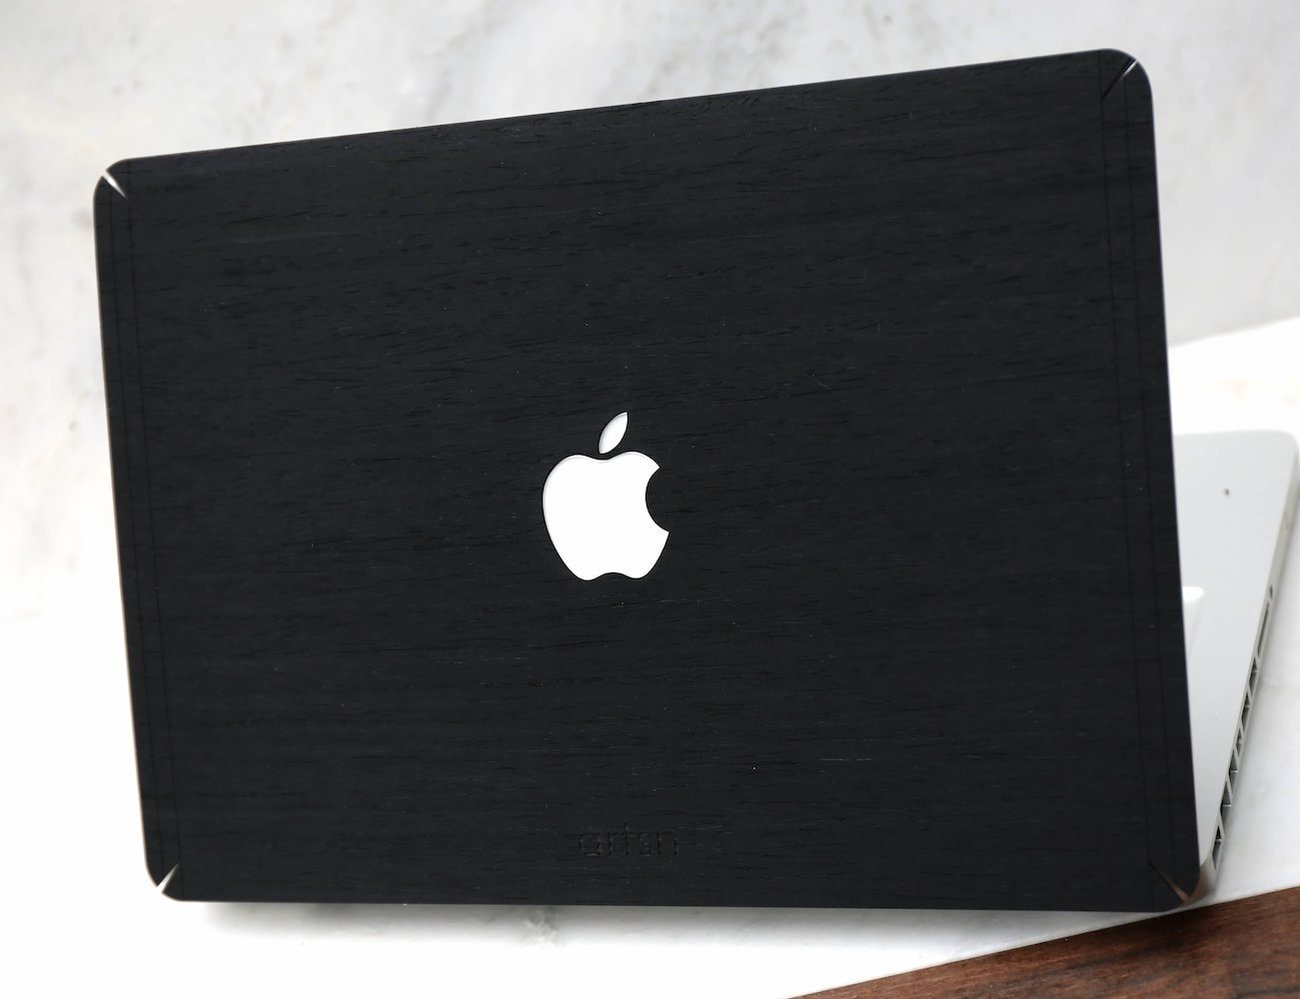 Black Ash Wood MacBook Skin by ARTSN